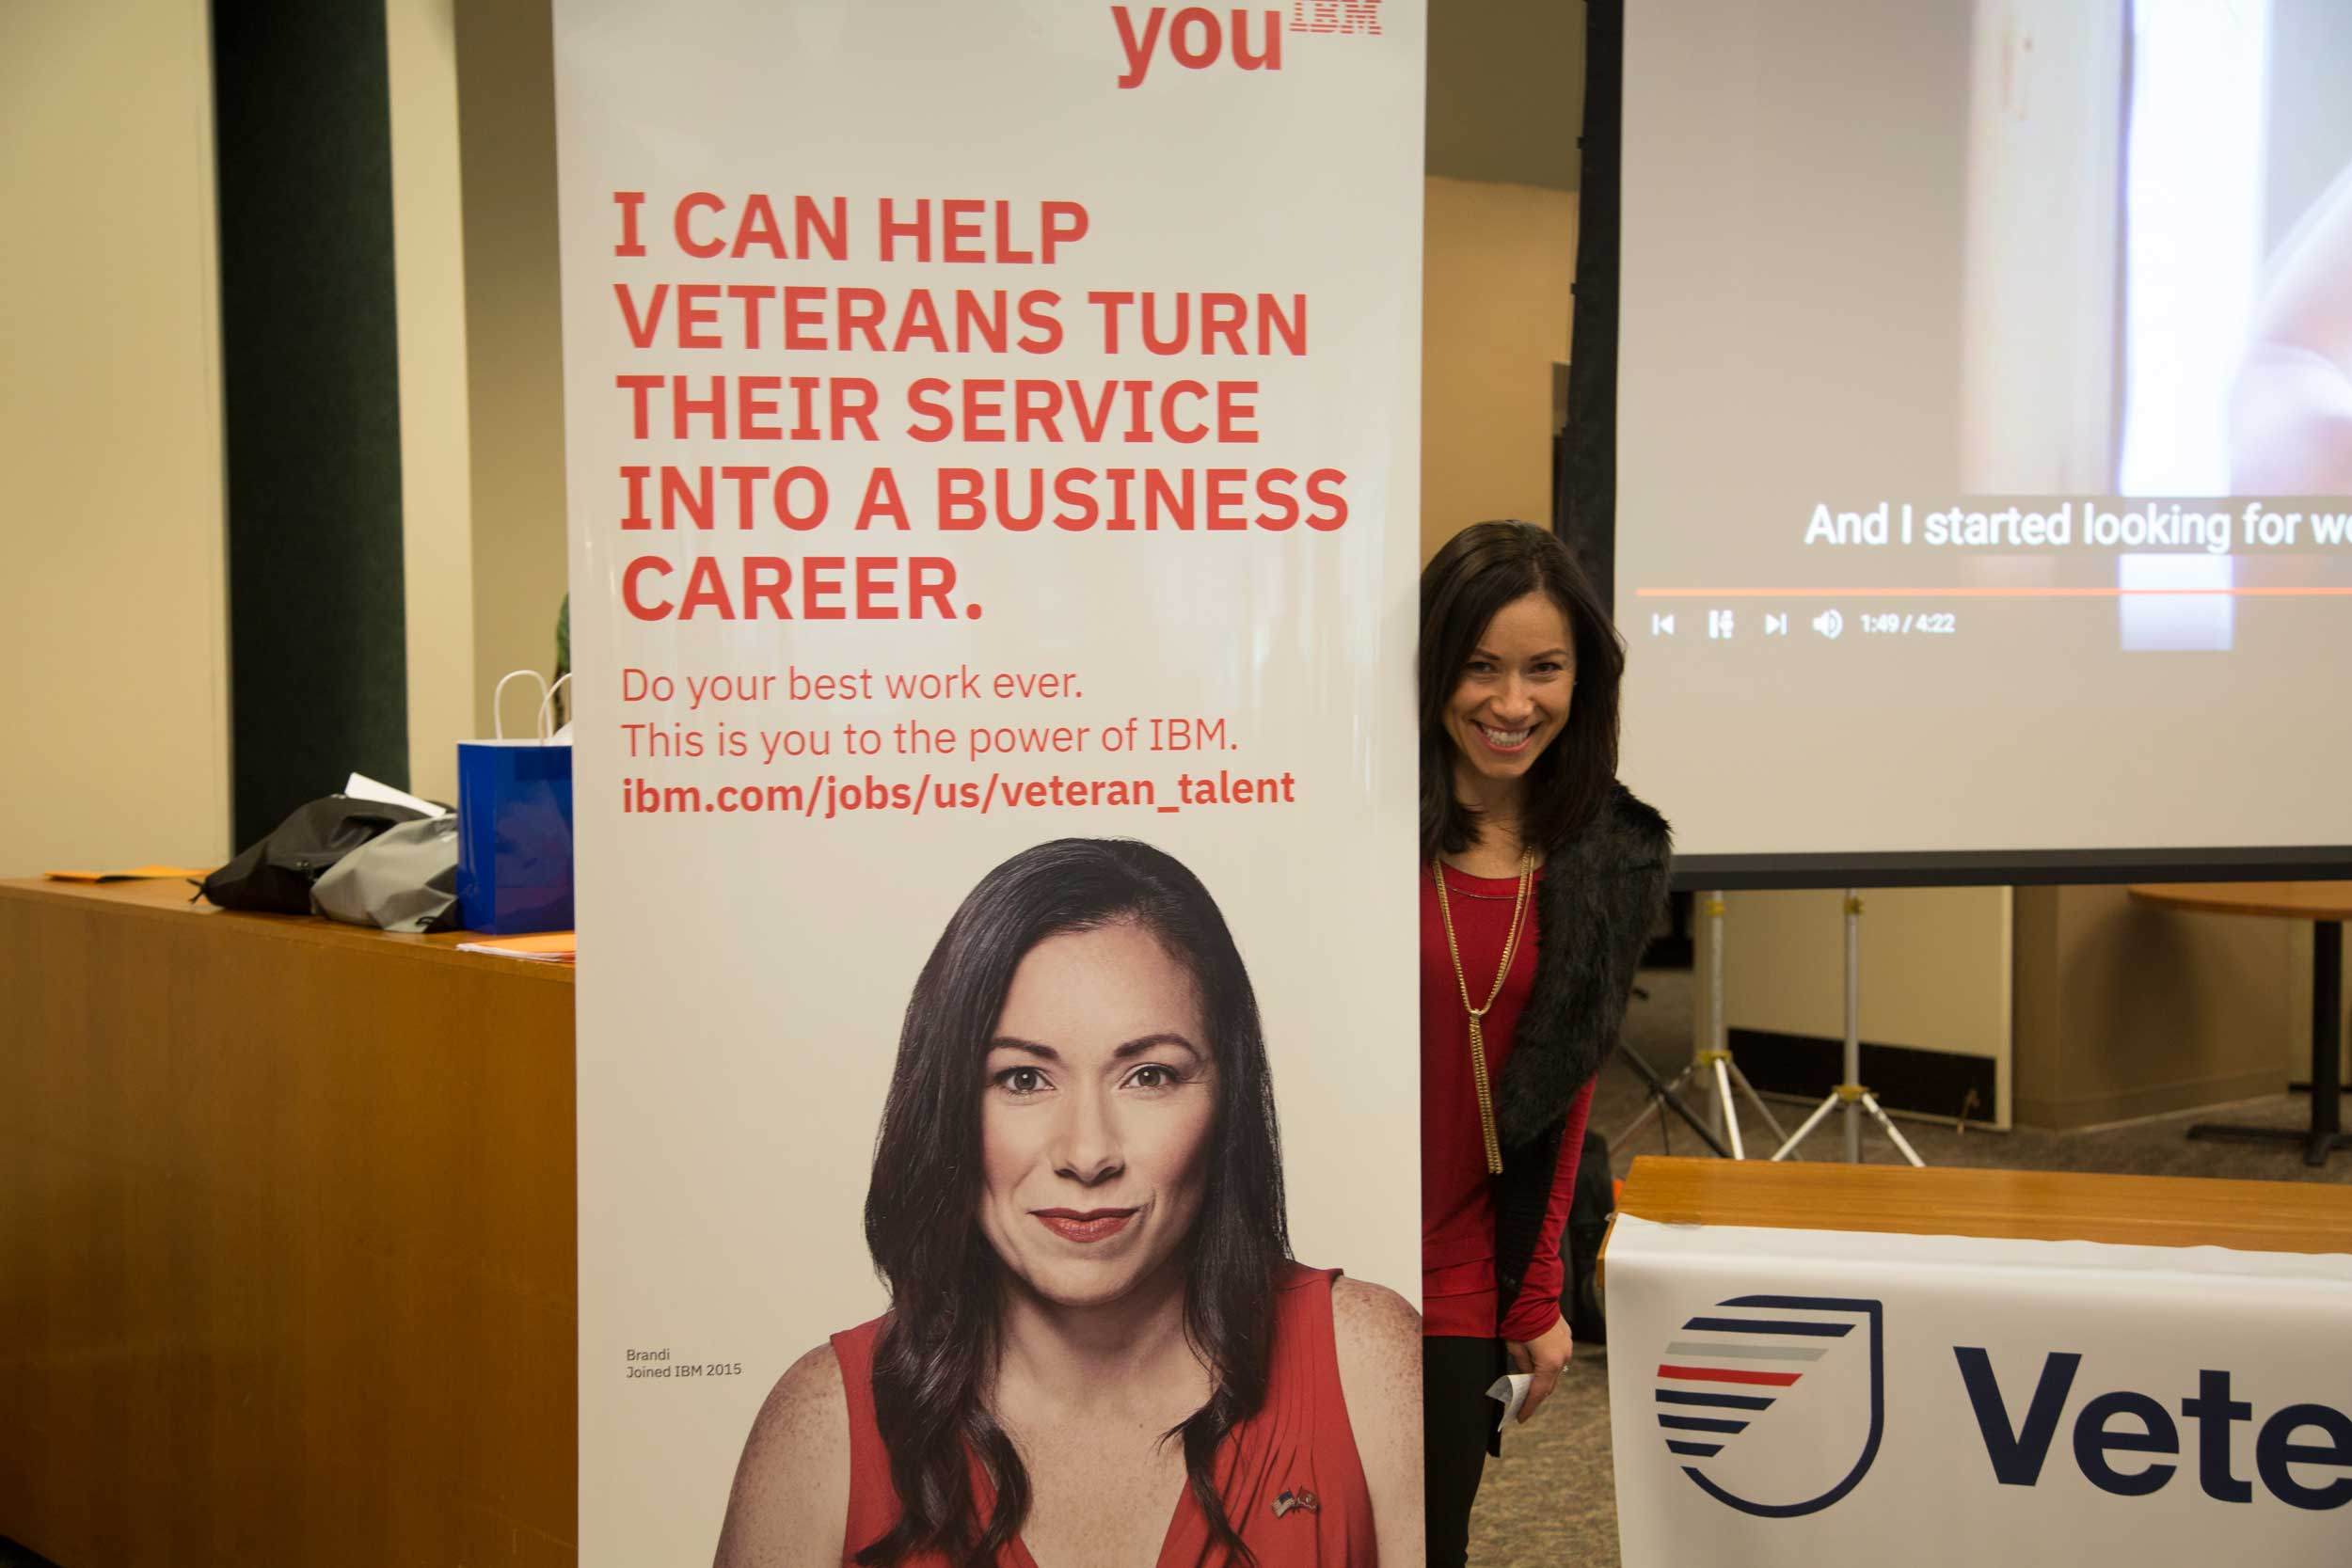 I Can Help Veterans Turn Their Service Into A Business Career.